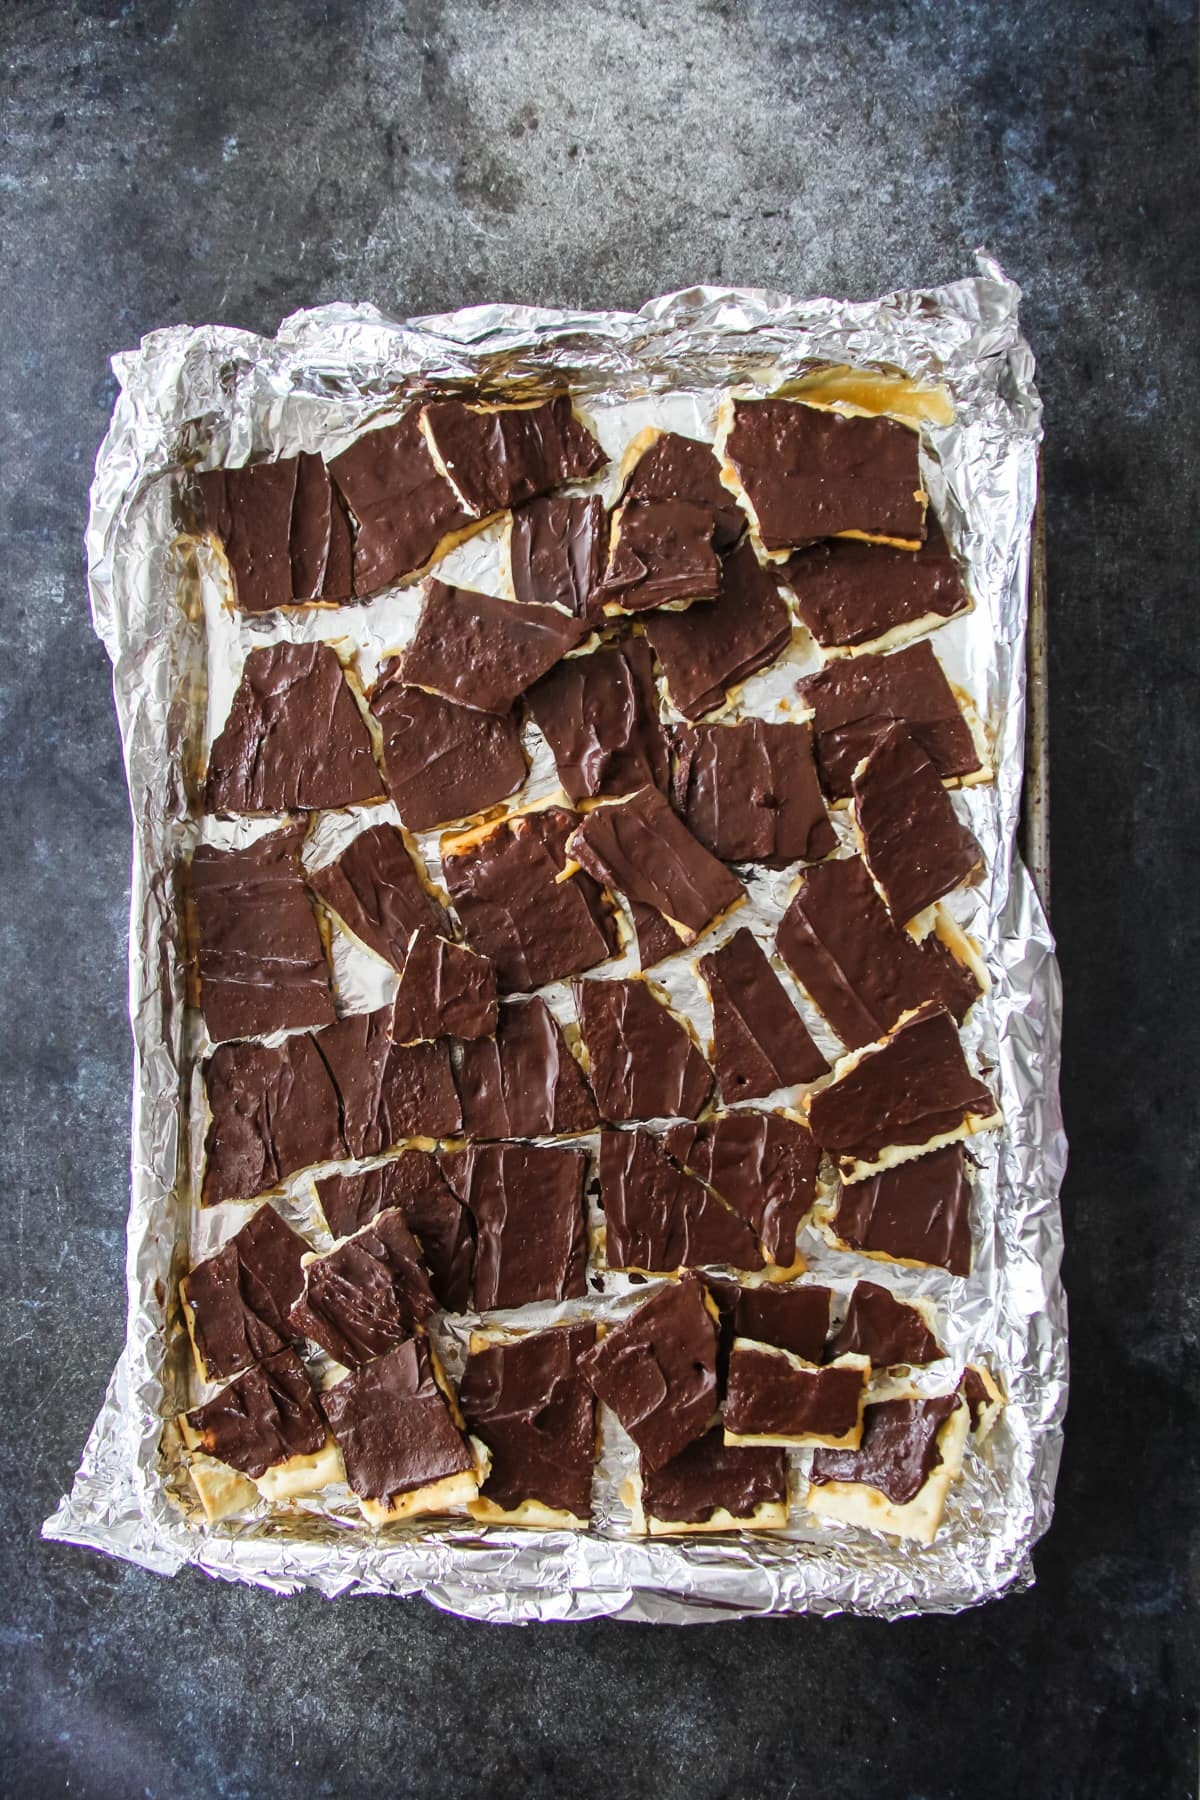 a tin foil lined baking sheet with squares of chocolate and caramel covered crackers